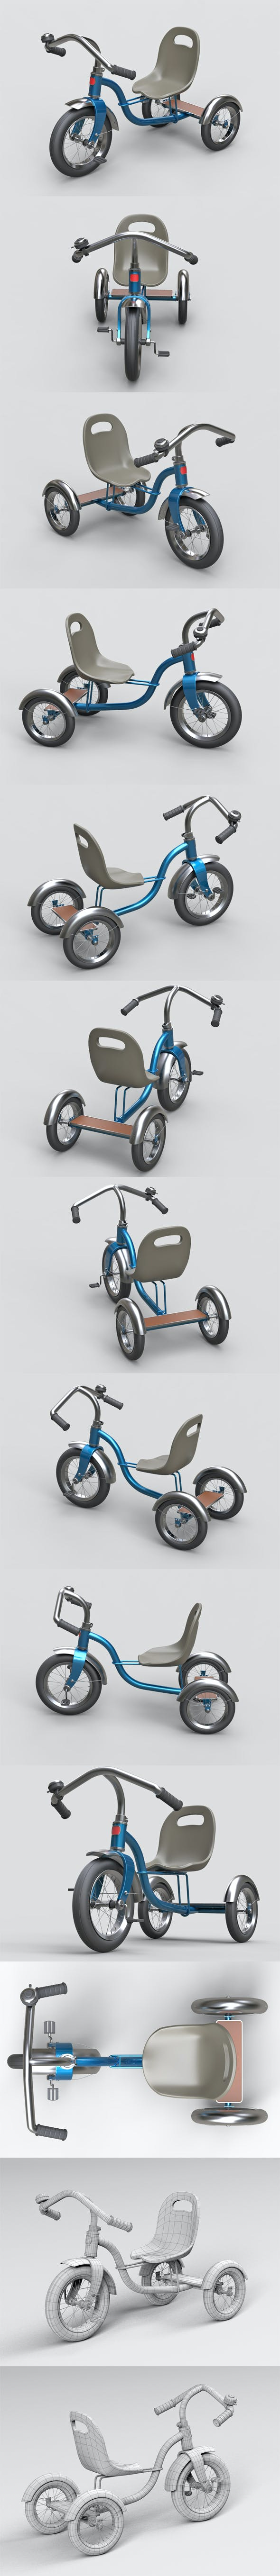 Childrens tricycle - 3DOcean Item for Sale